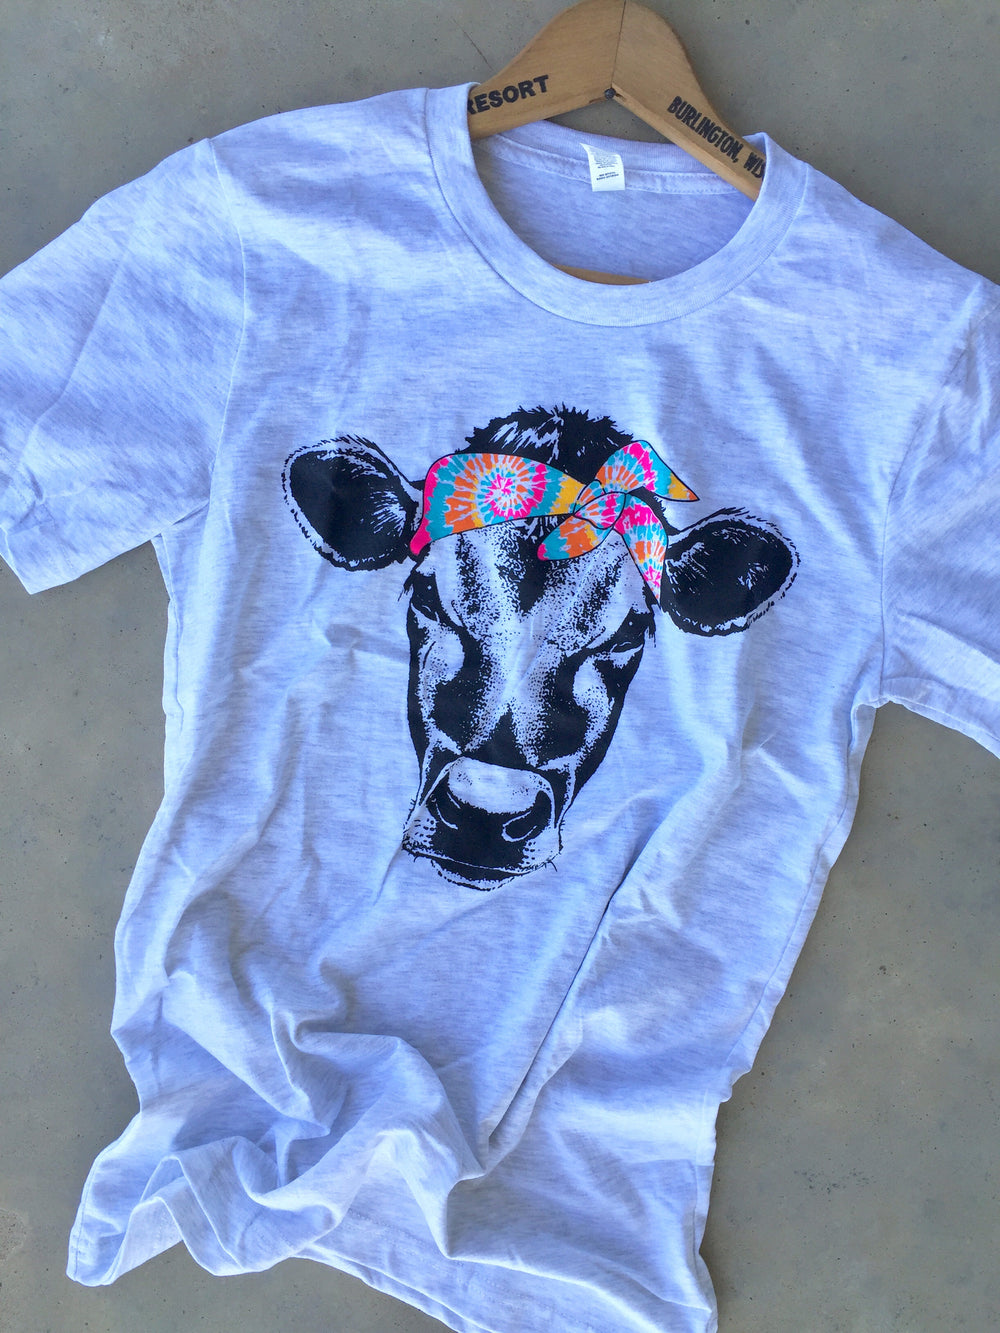 The Coweta Funky Cow Tye Dye Graphic Tee